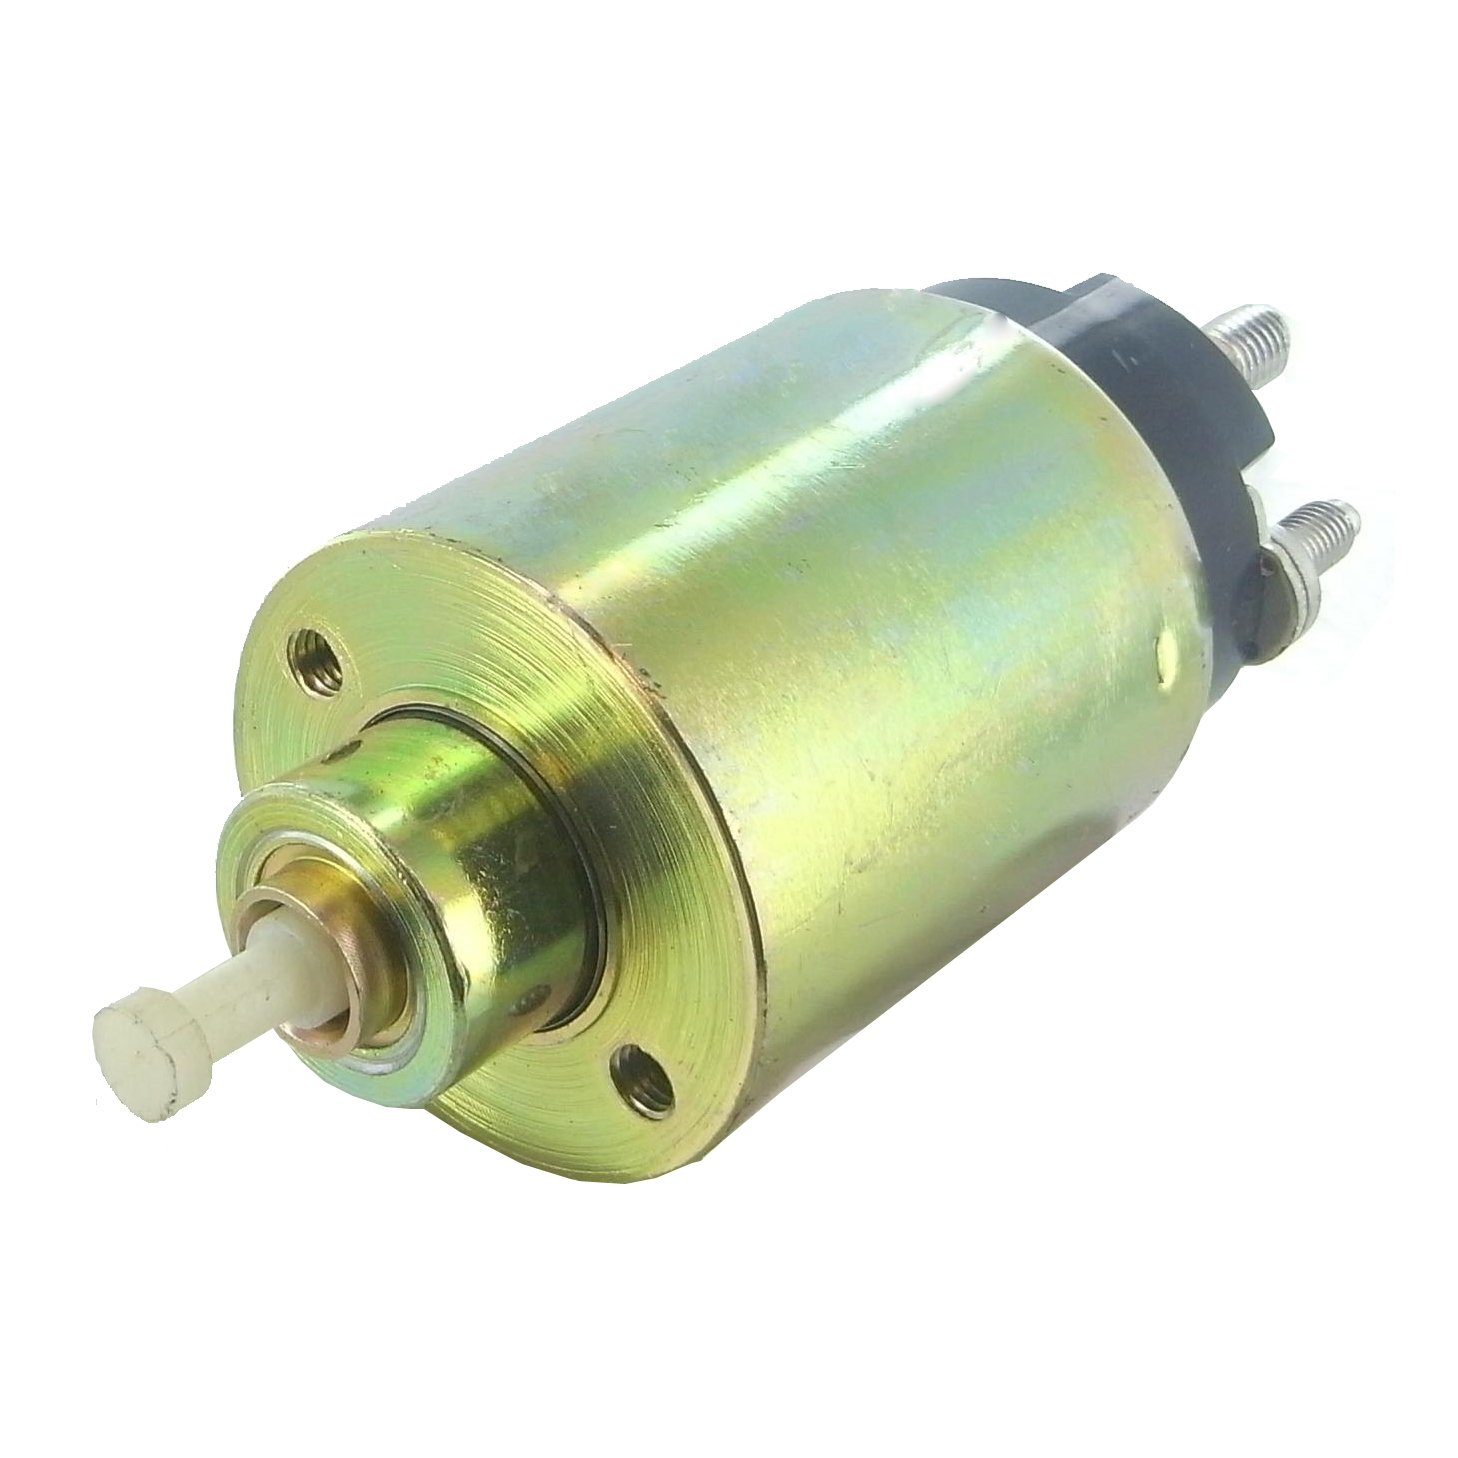 Mercury Cougar Mariner Mountaineer New Starter Solenoid Replacement For Ford Aerostar Escape Escort Explorer Focus Mustang Ranger Thunderbird Windstar; Jaguar S-Type; Lincoln Continental; Mazda Pickup Tribute